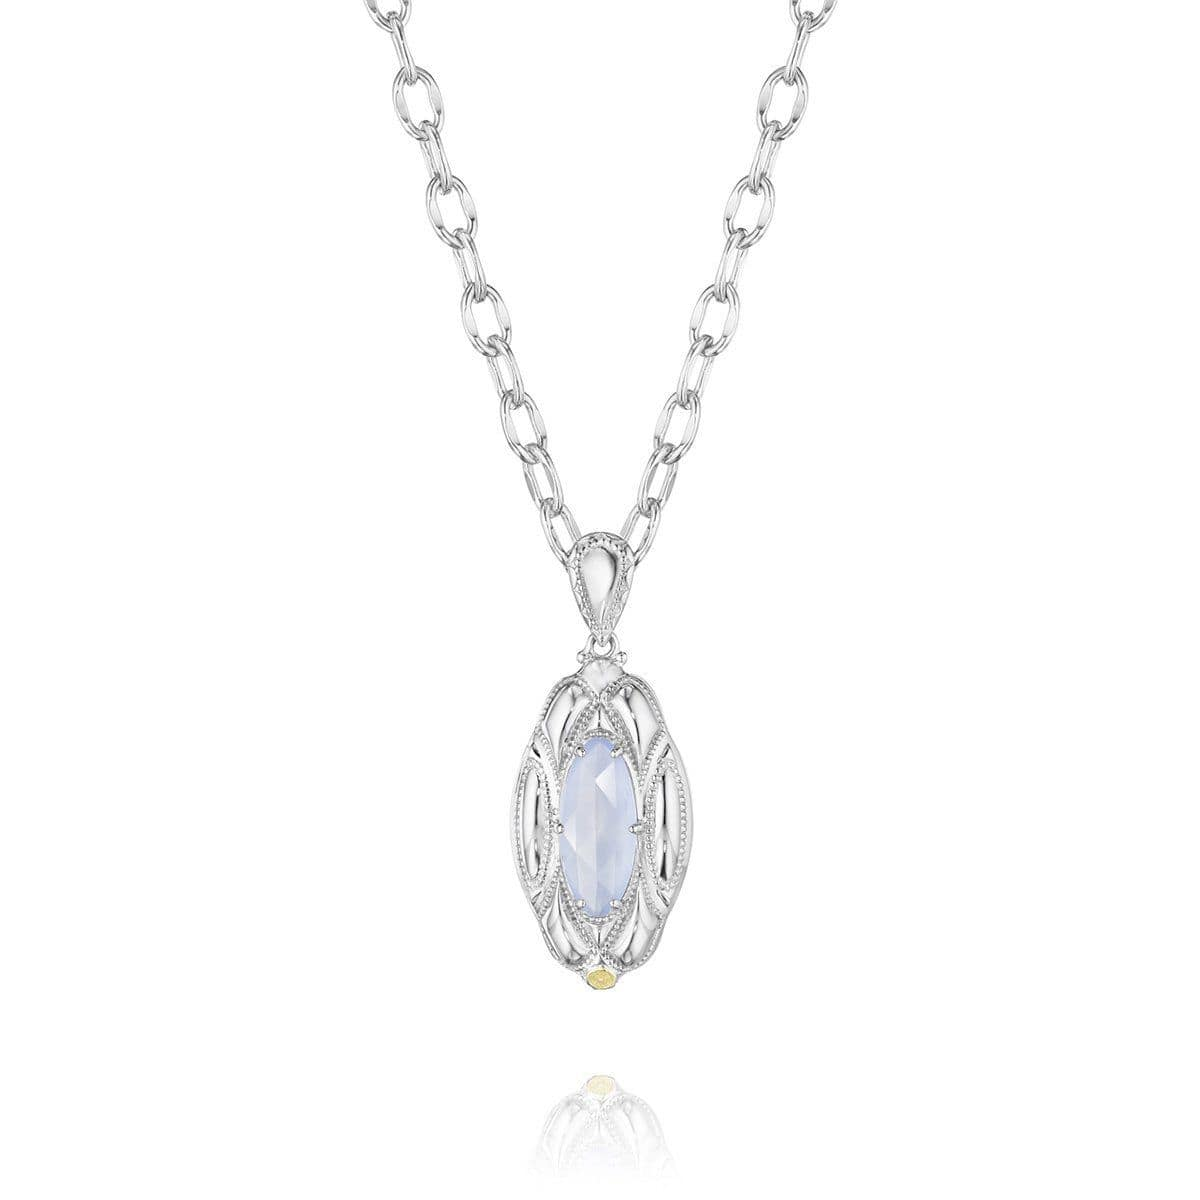 Silver Chalcedony Classic Rock Pendant - SN12926-Tacori-Renee Taylor Gallery